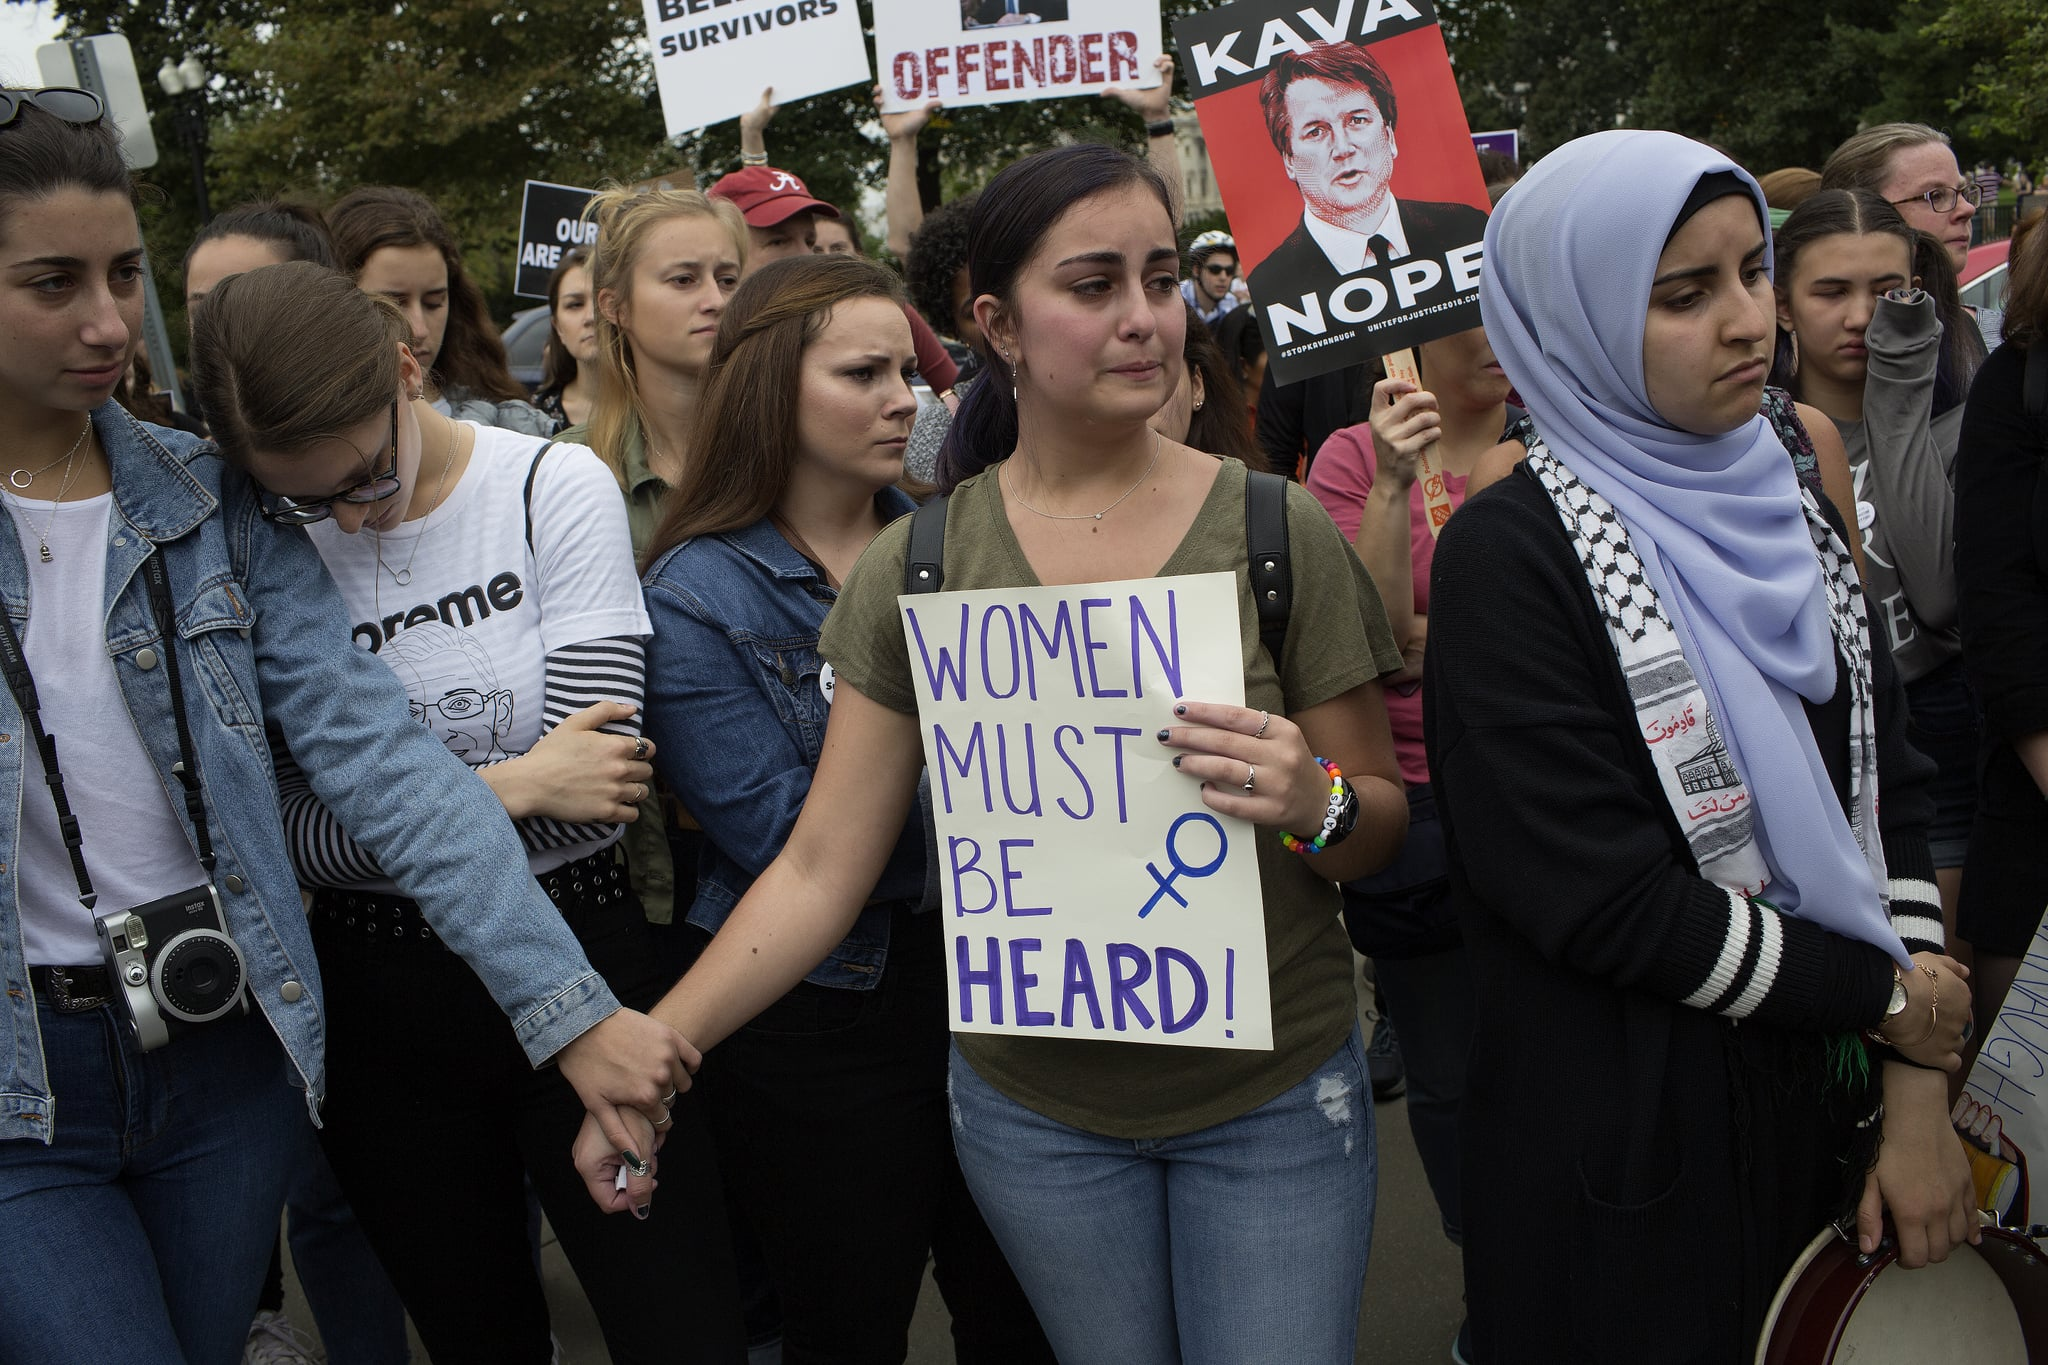 WASHINGTON, D.C. - OCTOBER 6: As the United States Senate prepares to vote to confirm Judge Brett Kavanaugh's nomination to the Supreme Court, women opposed to his nomination gather in front of the Supreme Court to share their stories of sexual assault on October 6, 2018 in Washington, D.C.. (Photo by Andrew Lichtenstein/Corbis via Getty Images)